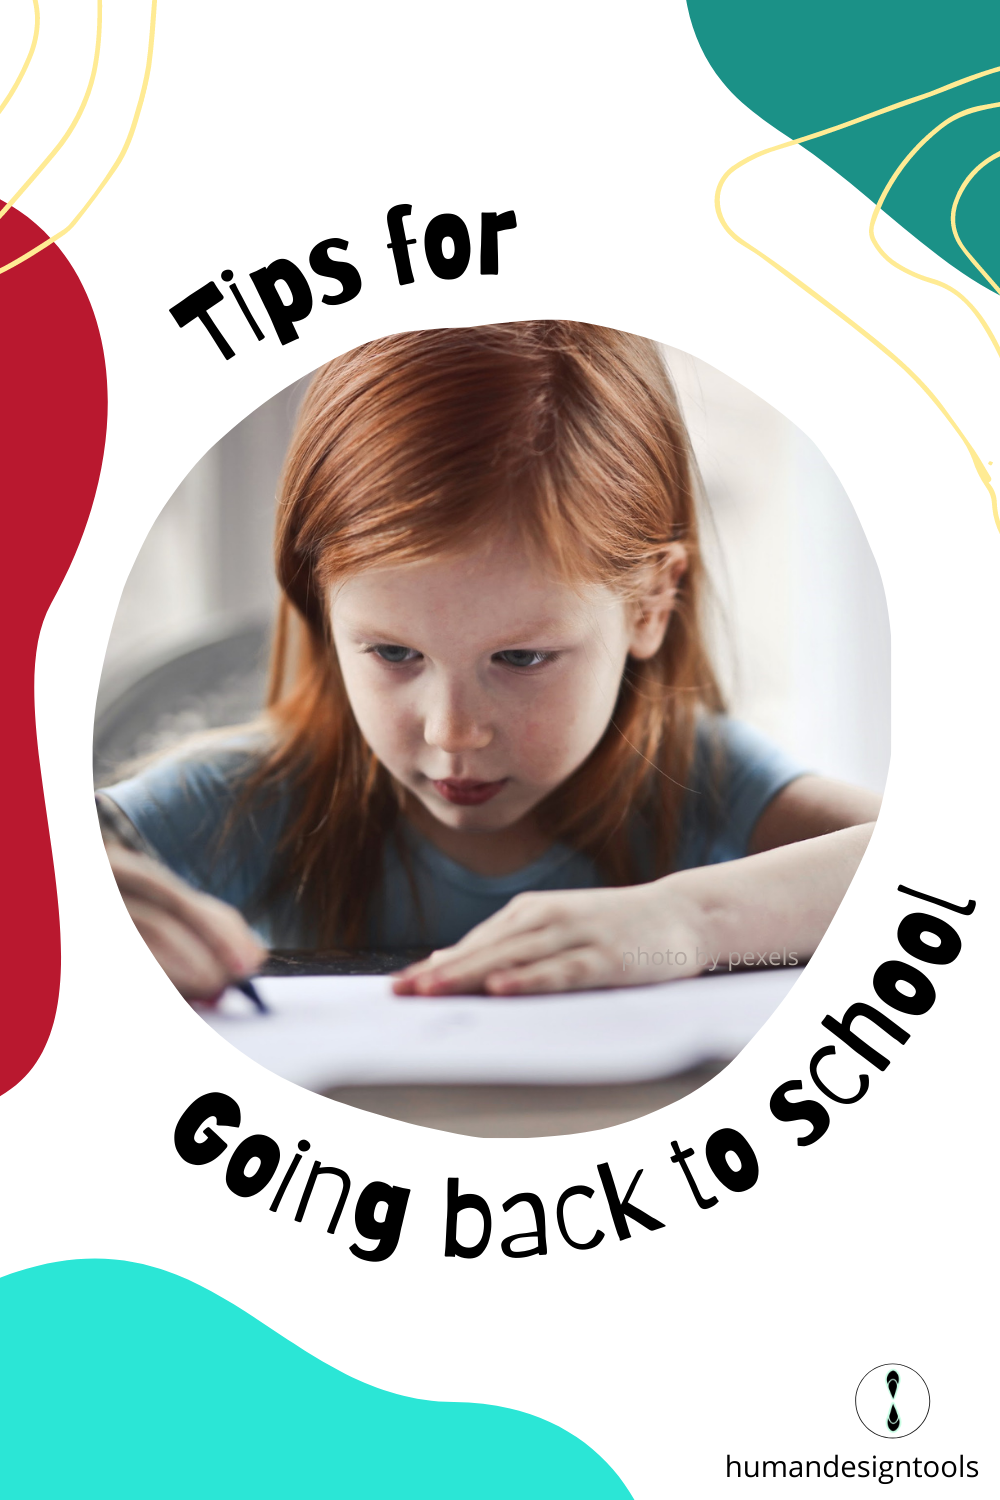 How to Prepare Your Kids for Back-to-School in a Pandemic